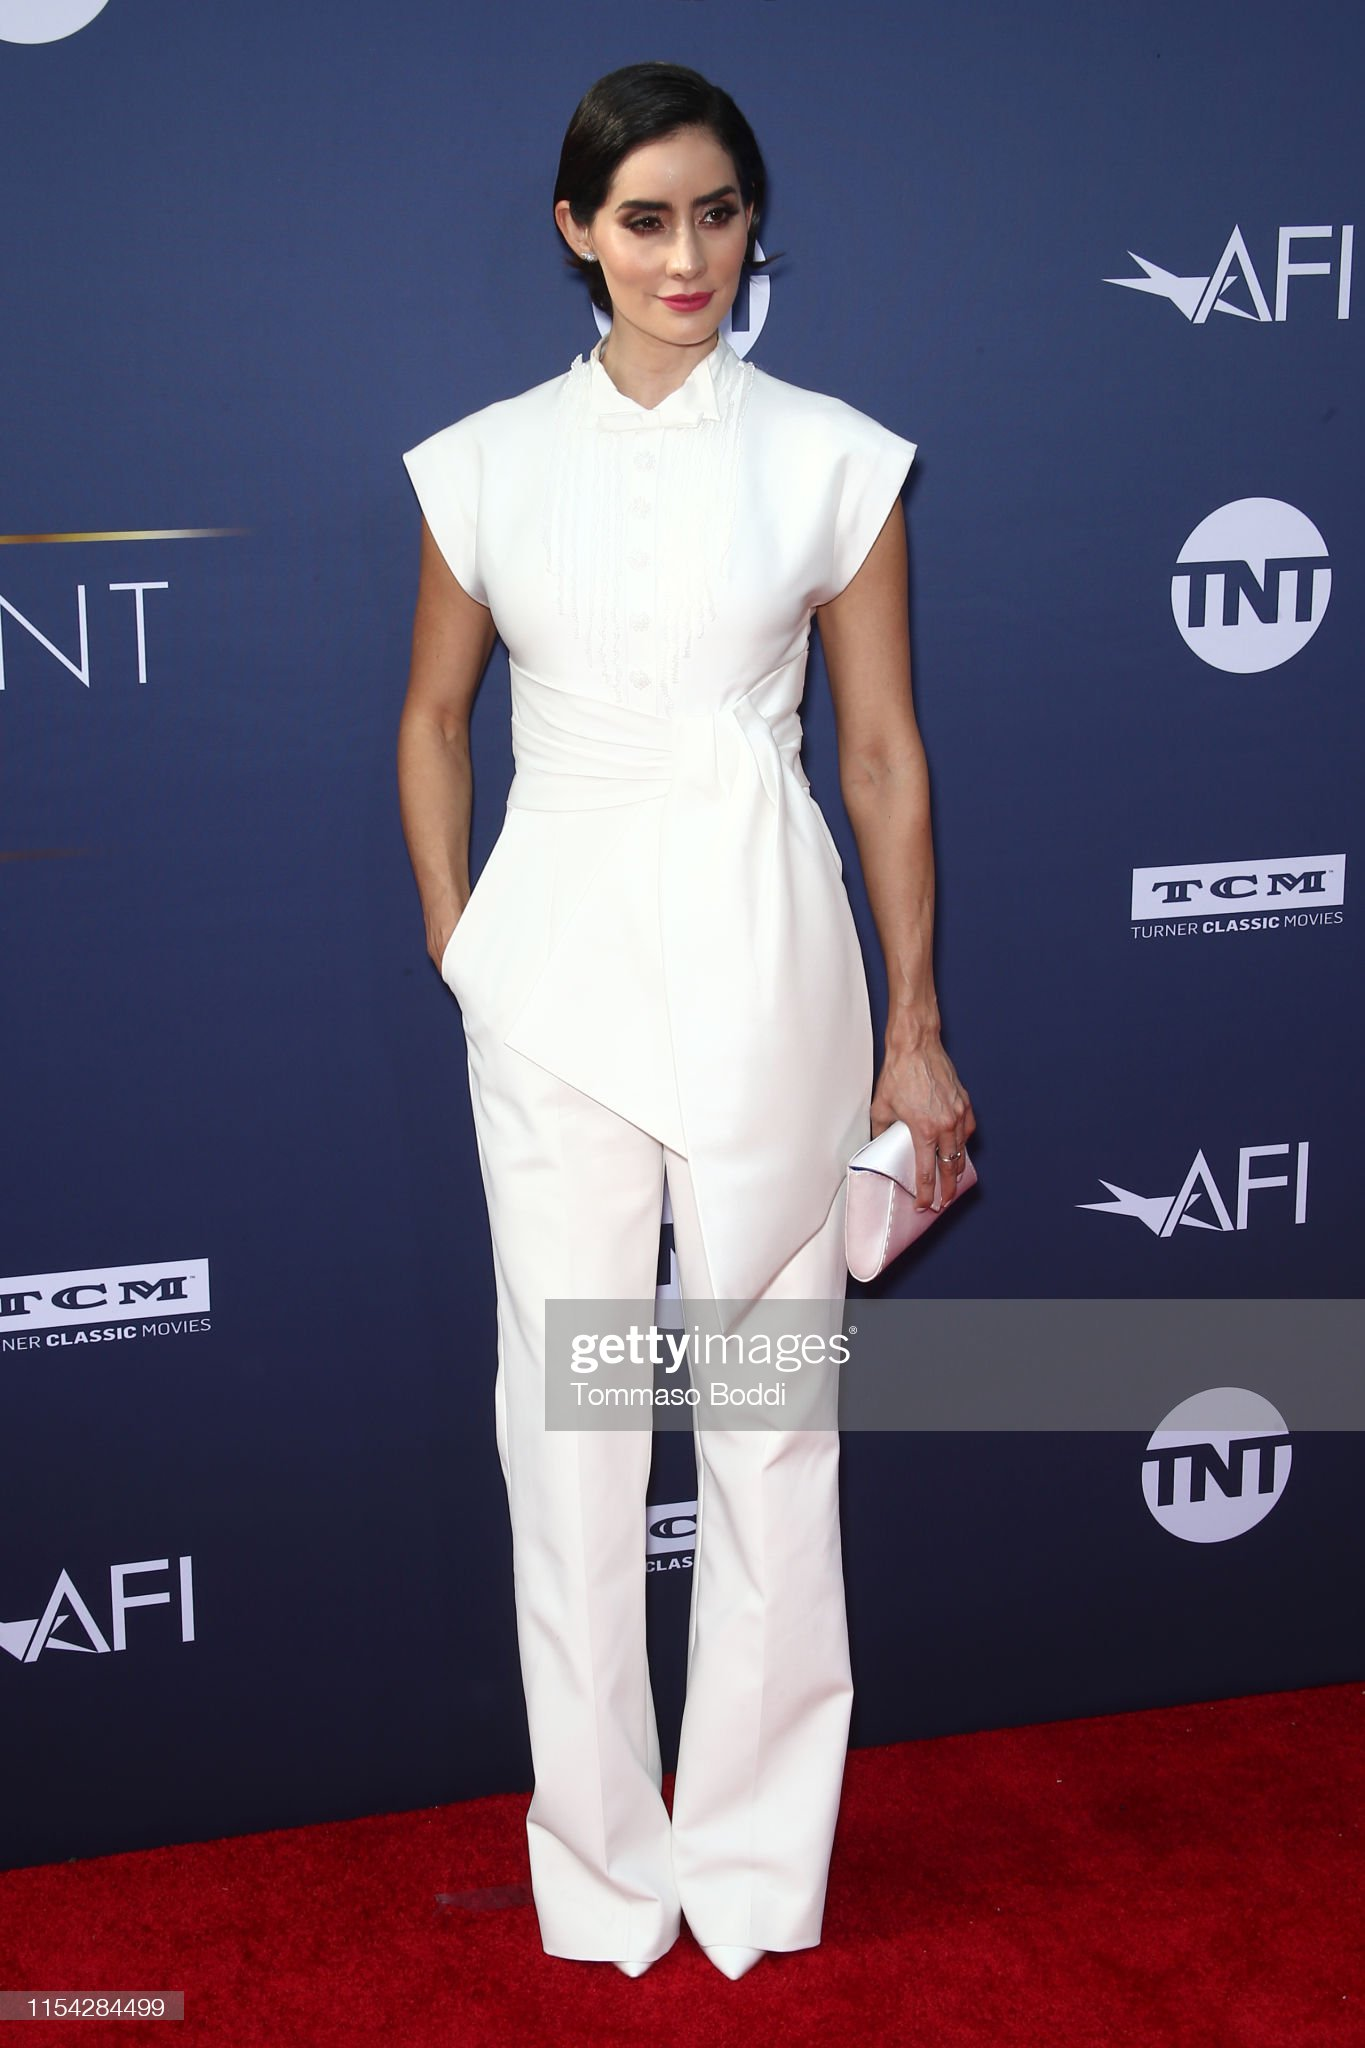 https://media.gettyimages.com/photos/paola-nunez-attends-the-american-film-institutes-47th-life-award-picture-id1154284499?s=2048x2048